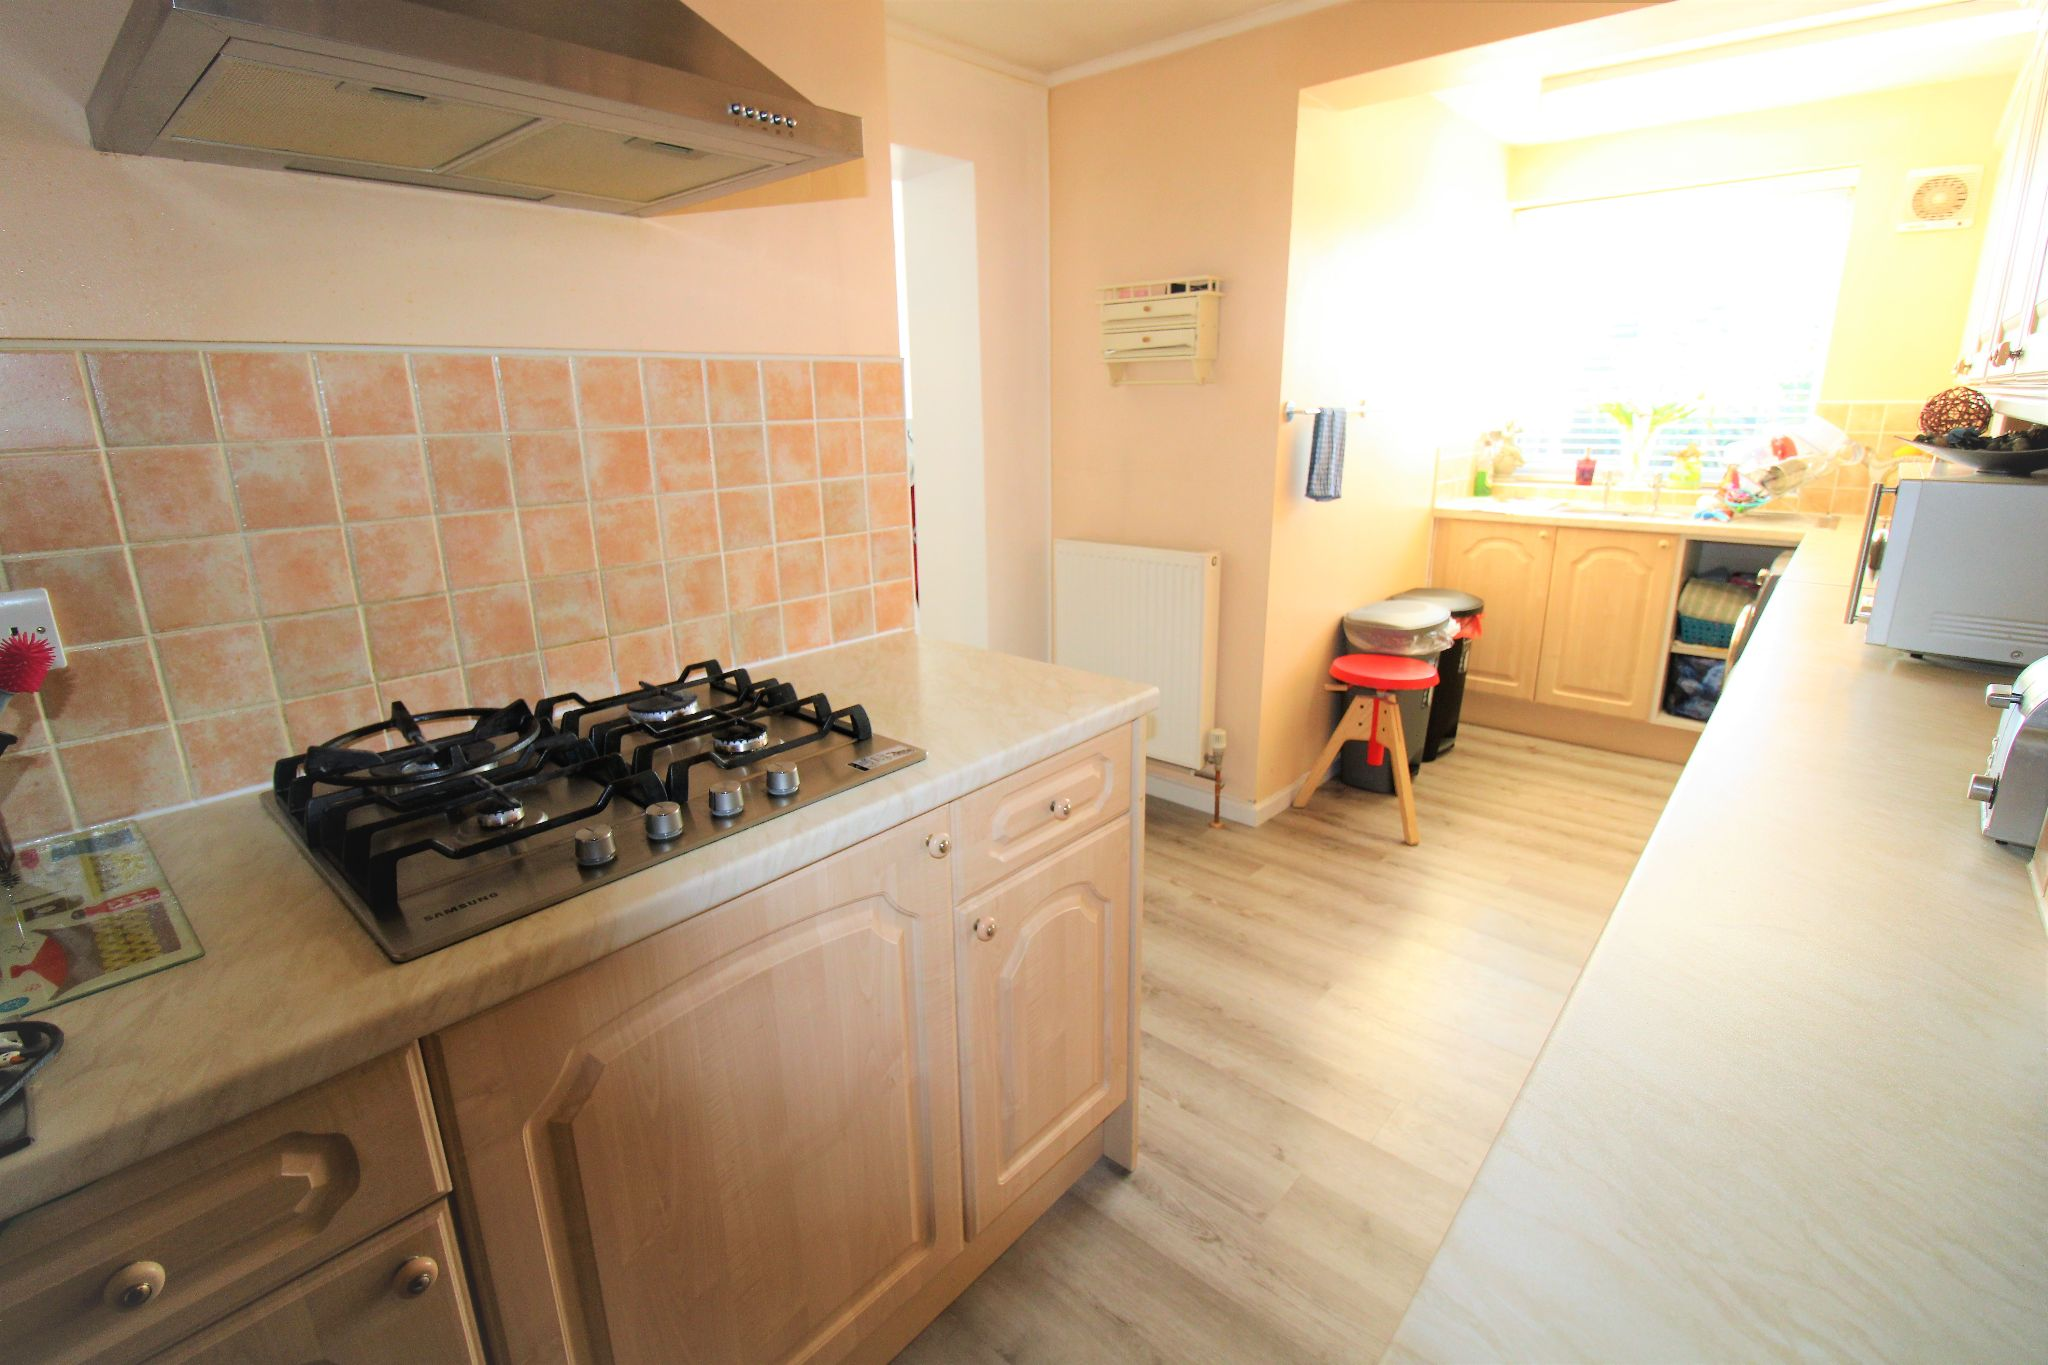 3 Bedroom Semi-detached House For Sale - Kitchen 1